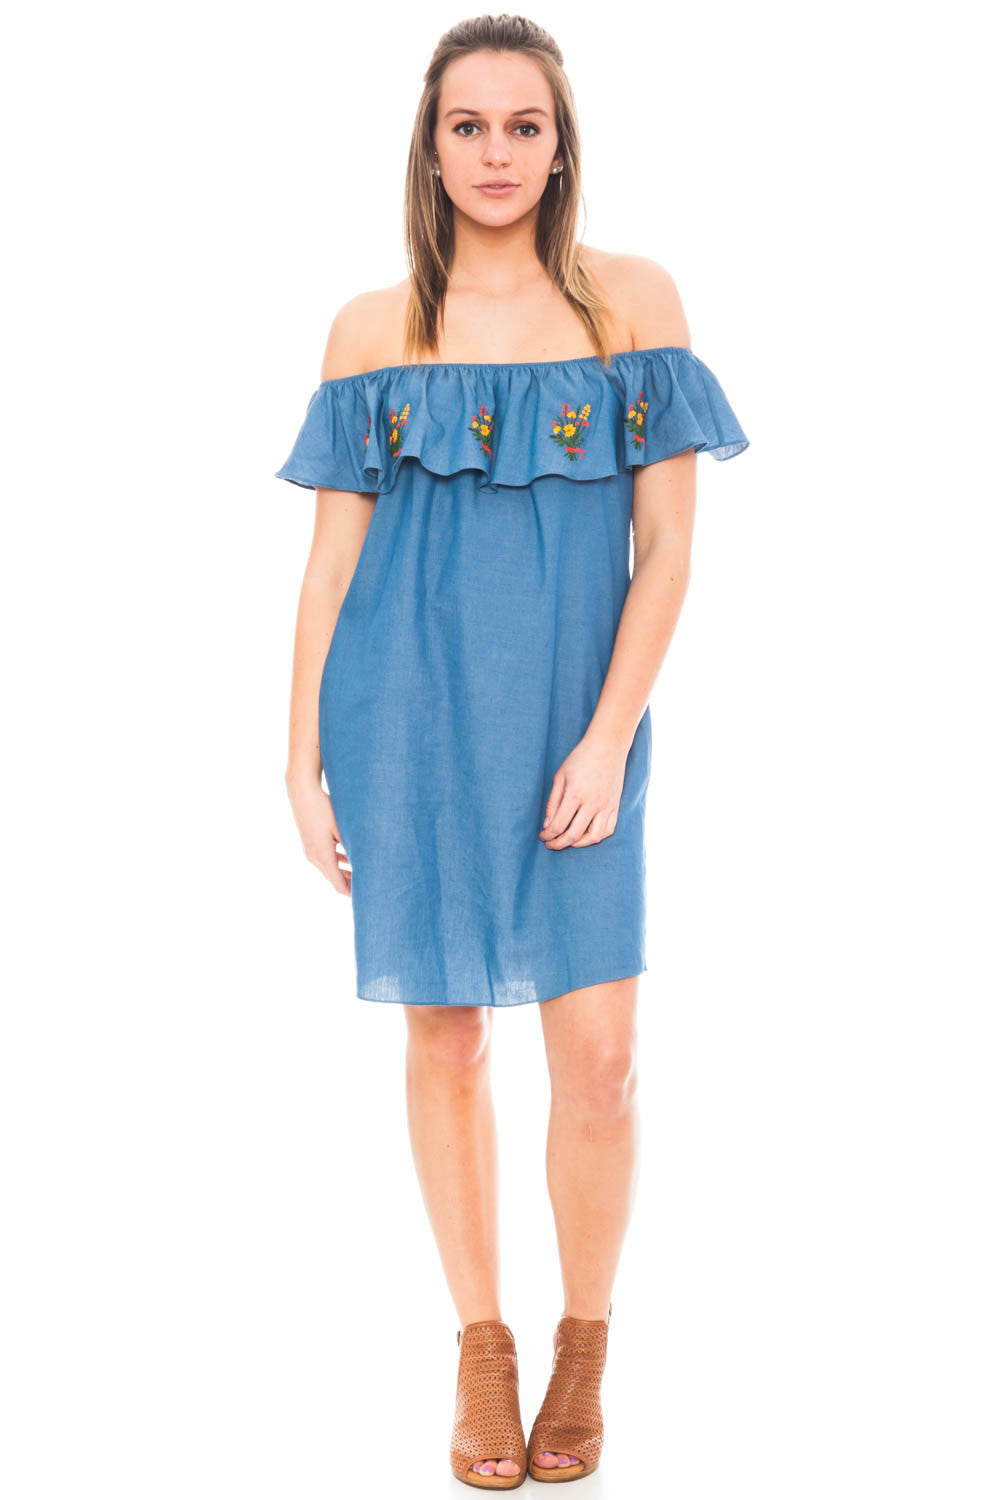 Dress - Embroidered Off Shoulder Dress by Everly